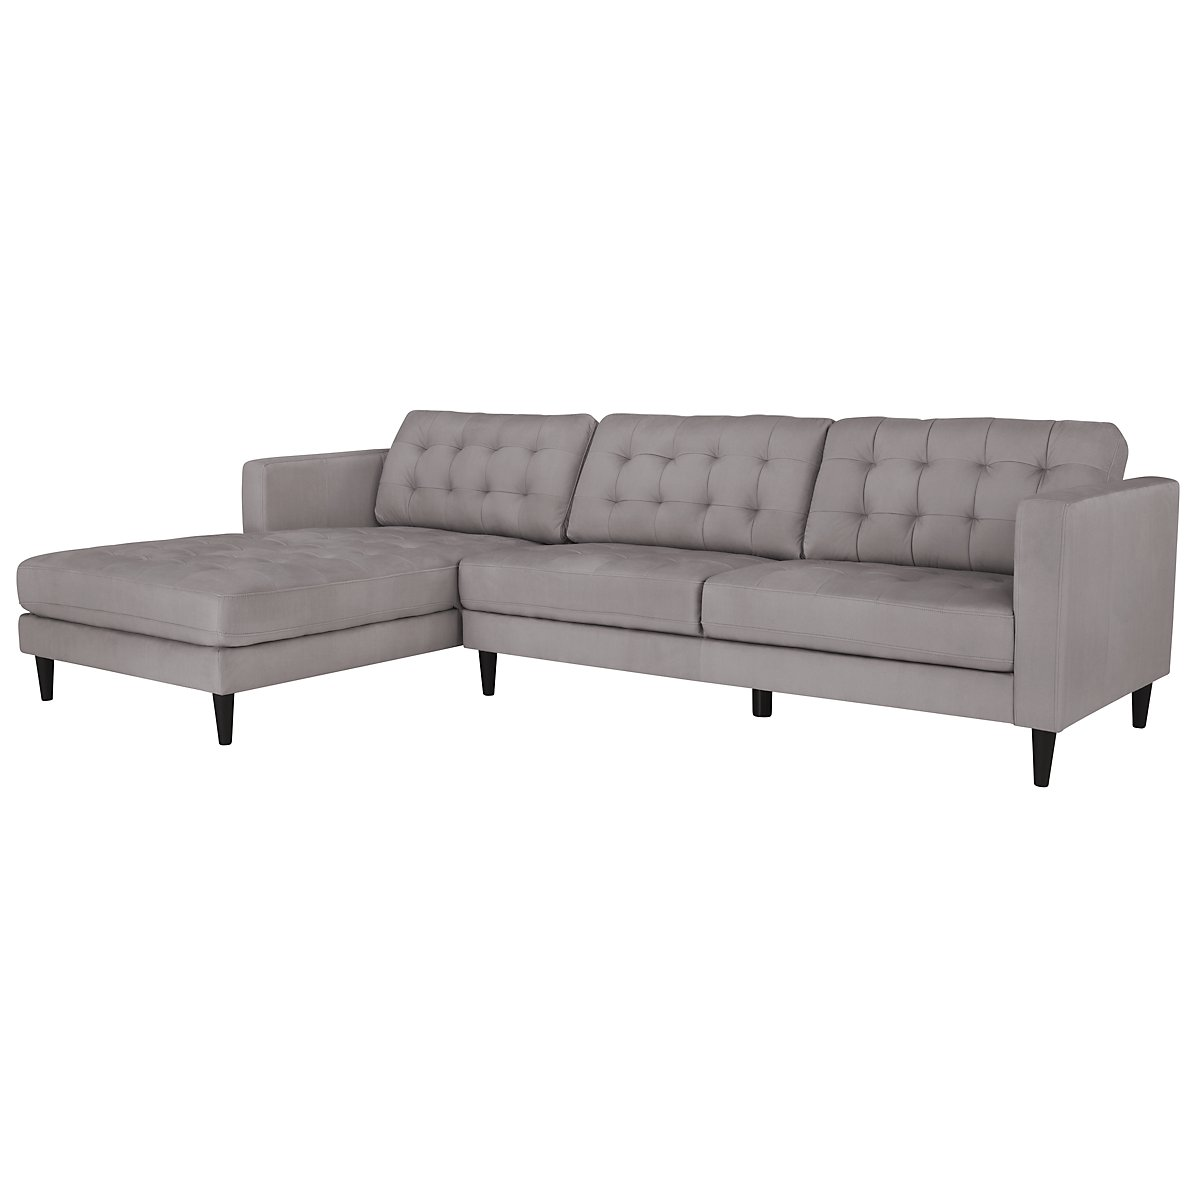 City furniture shae light gray microfiber left chaise for Gray microfiber sectional sofa with chaise